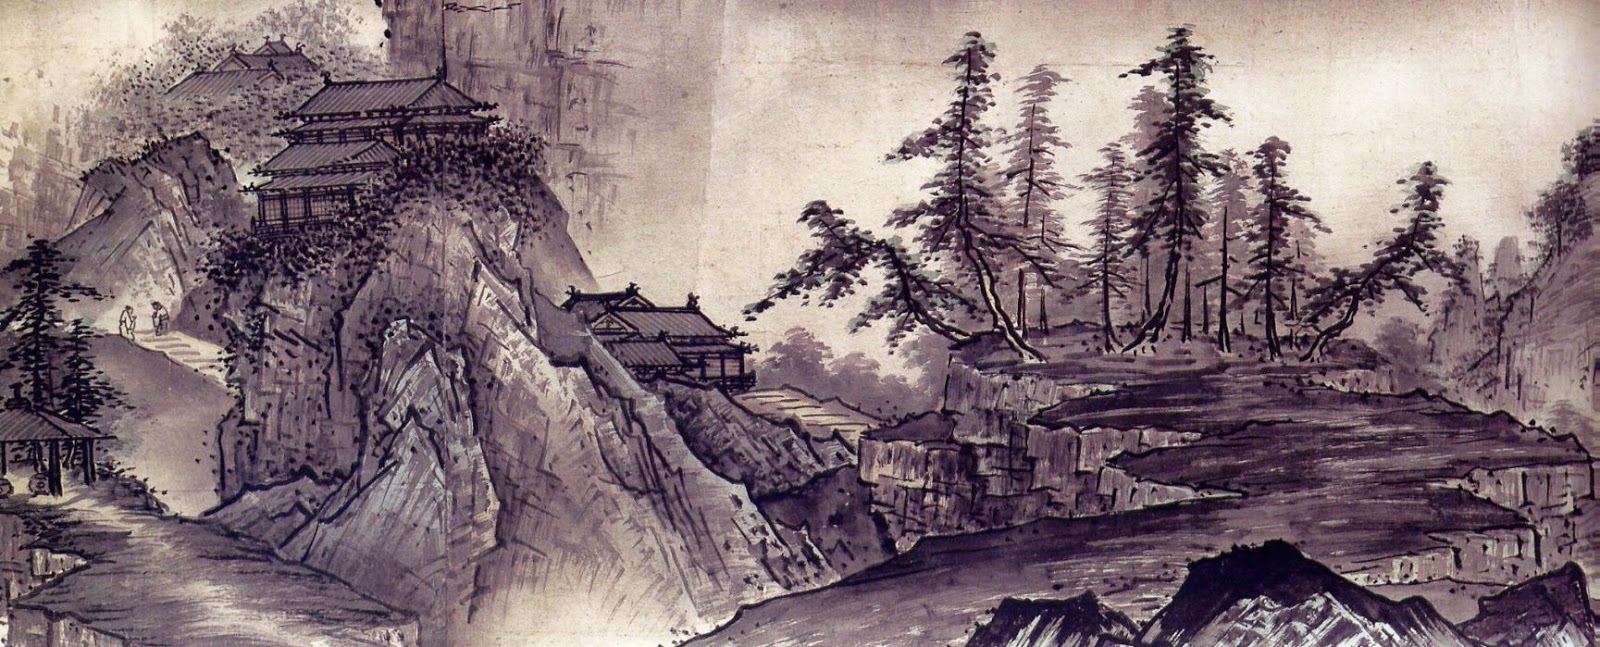 Sumi E The Art Of Japanese Ink Painting Downloadable Material